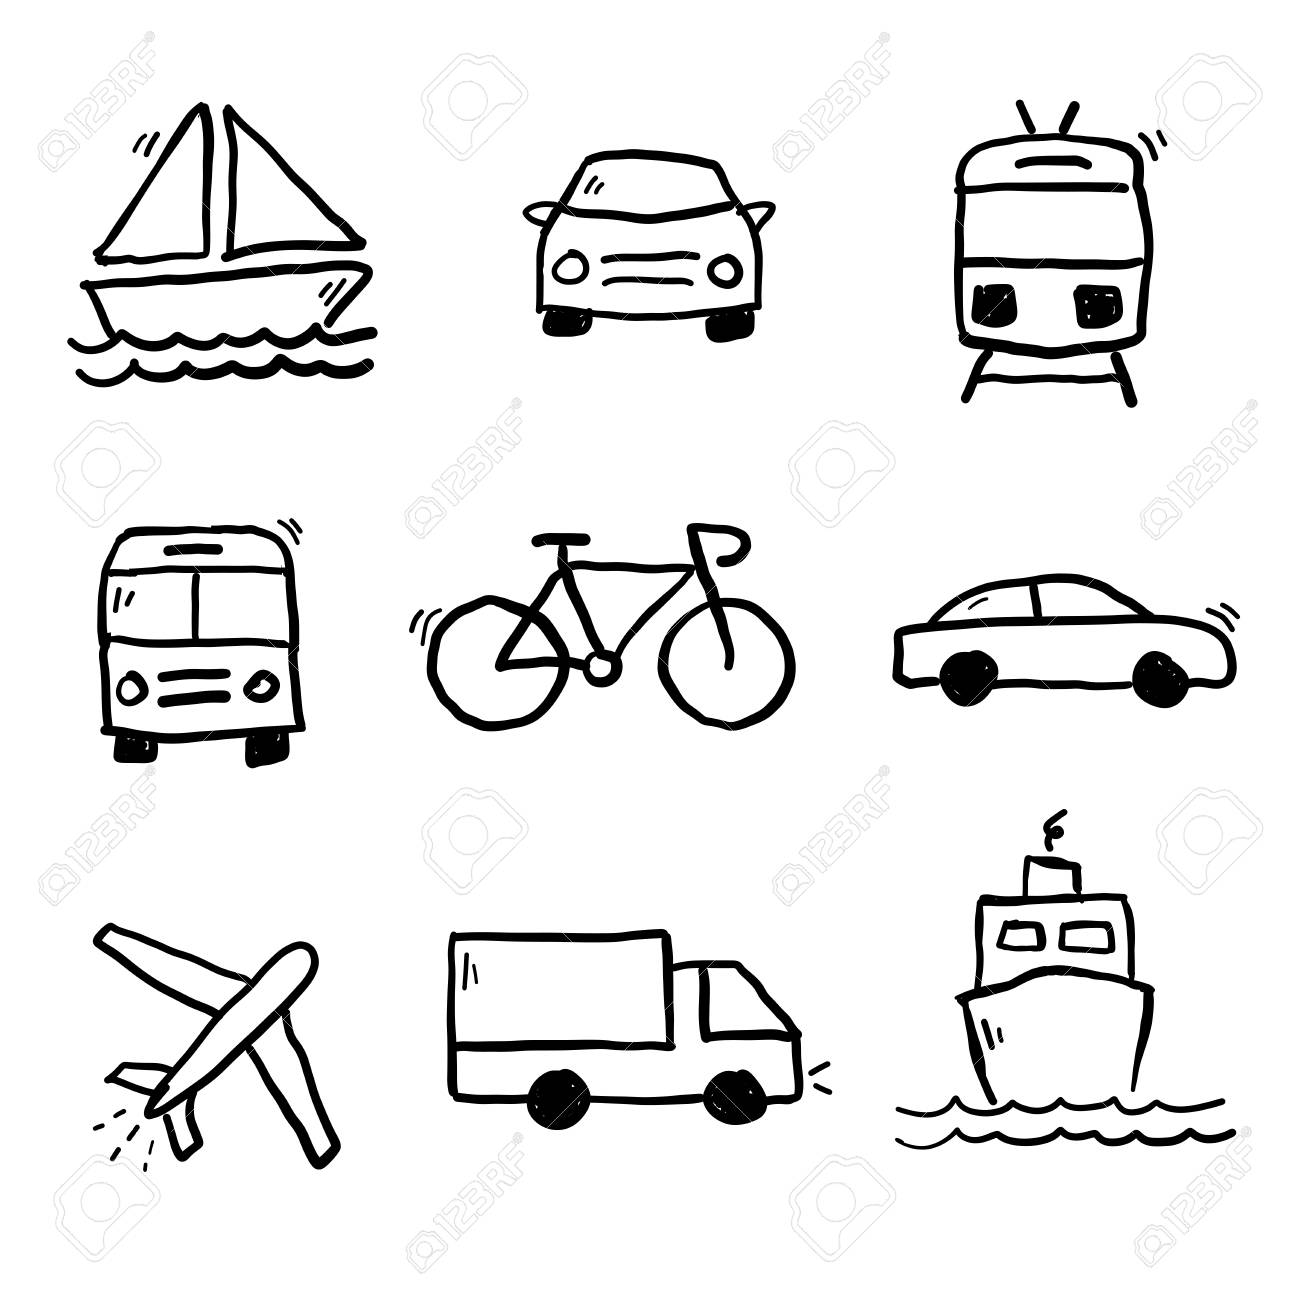 Transportation Doodle Drawings Collection Vector Illustration